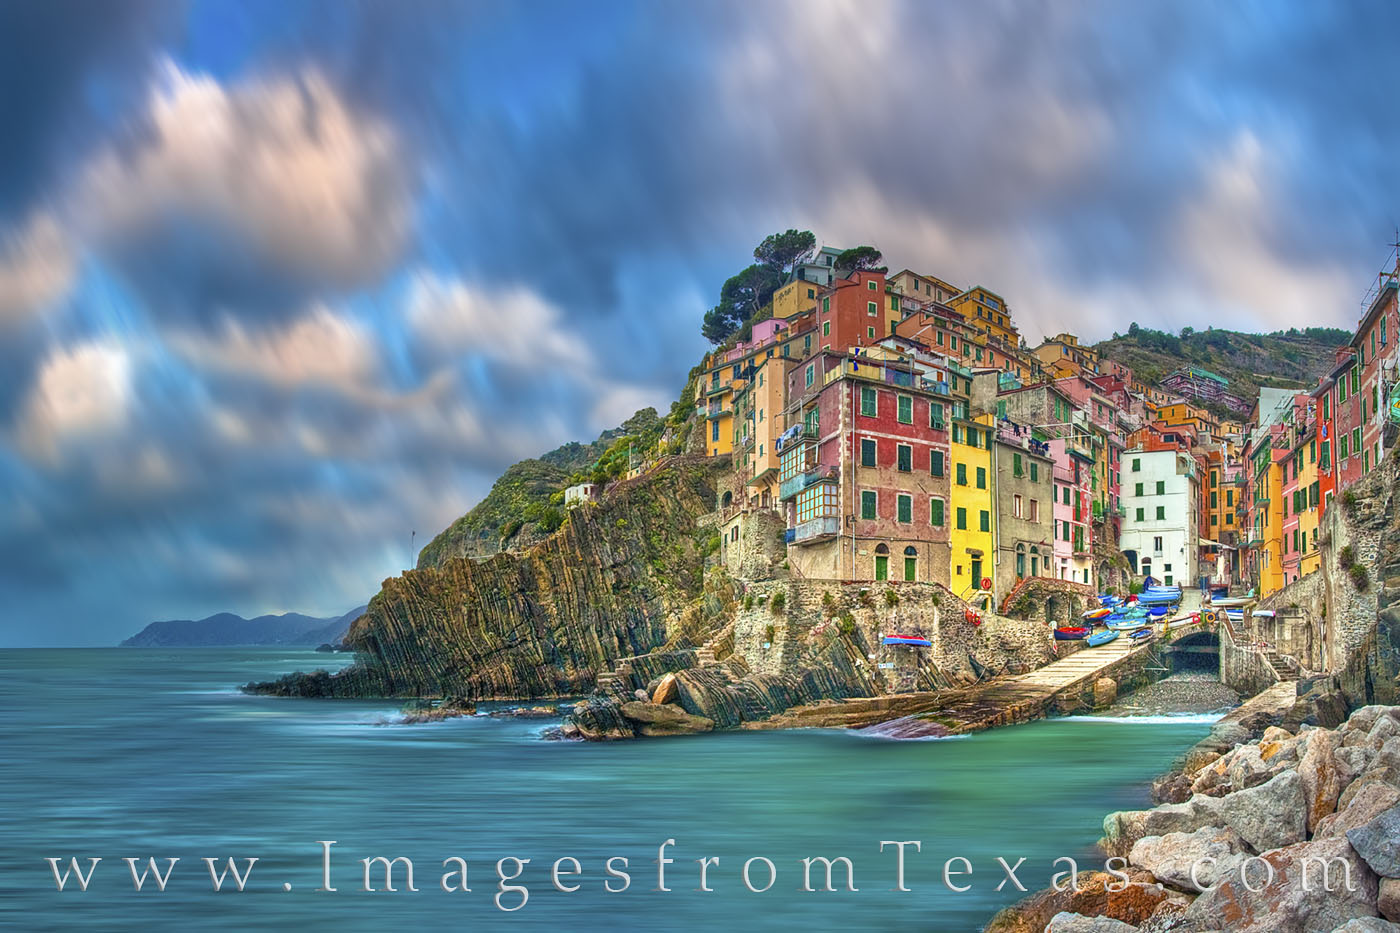 riomaggiore, cinque terre, ligurian coast, italy, italian coast, ocean, sea, ligurian sea, long exposure, morning, clouds, pastel colors, fishing, village, travels, photo